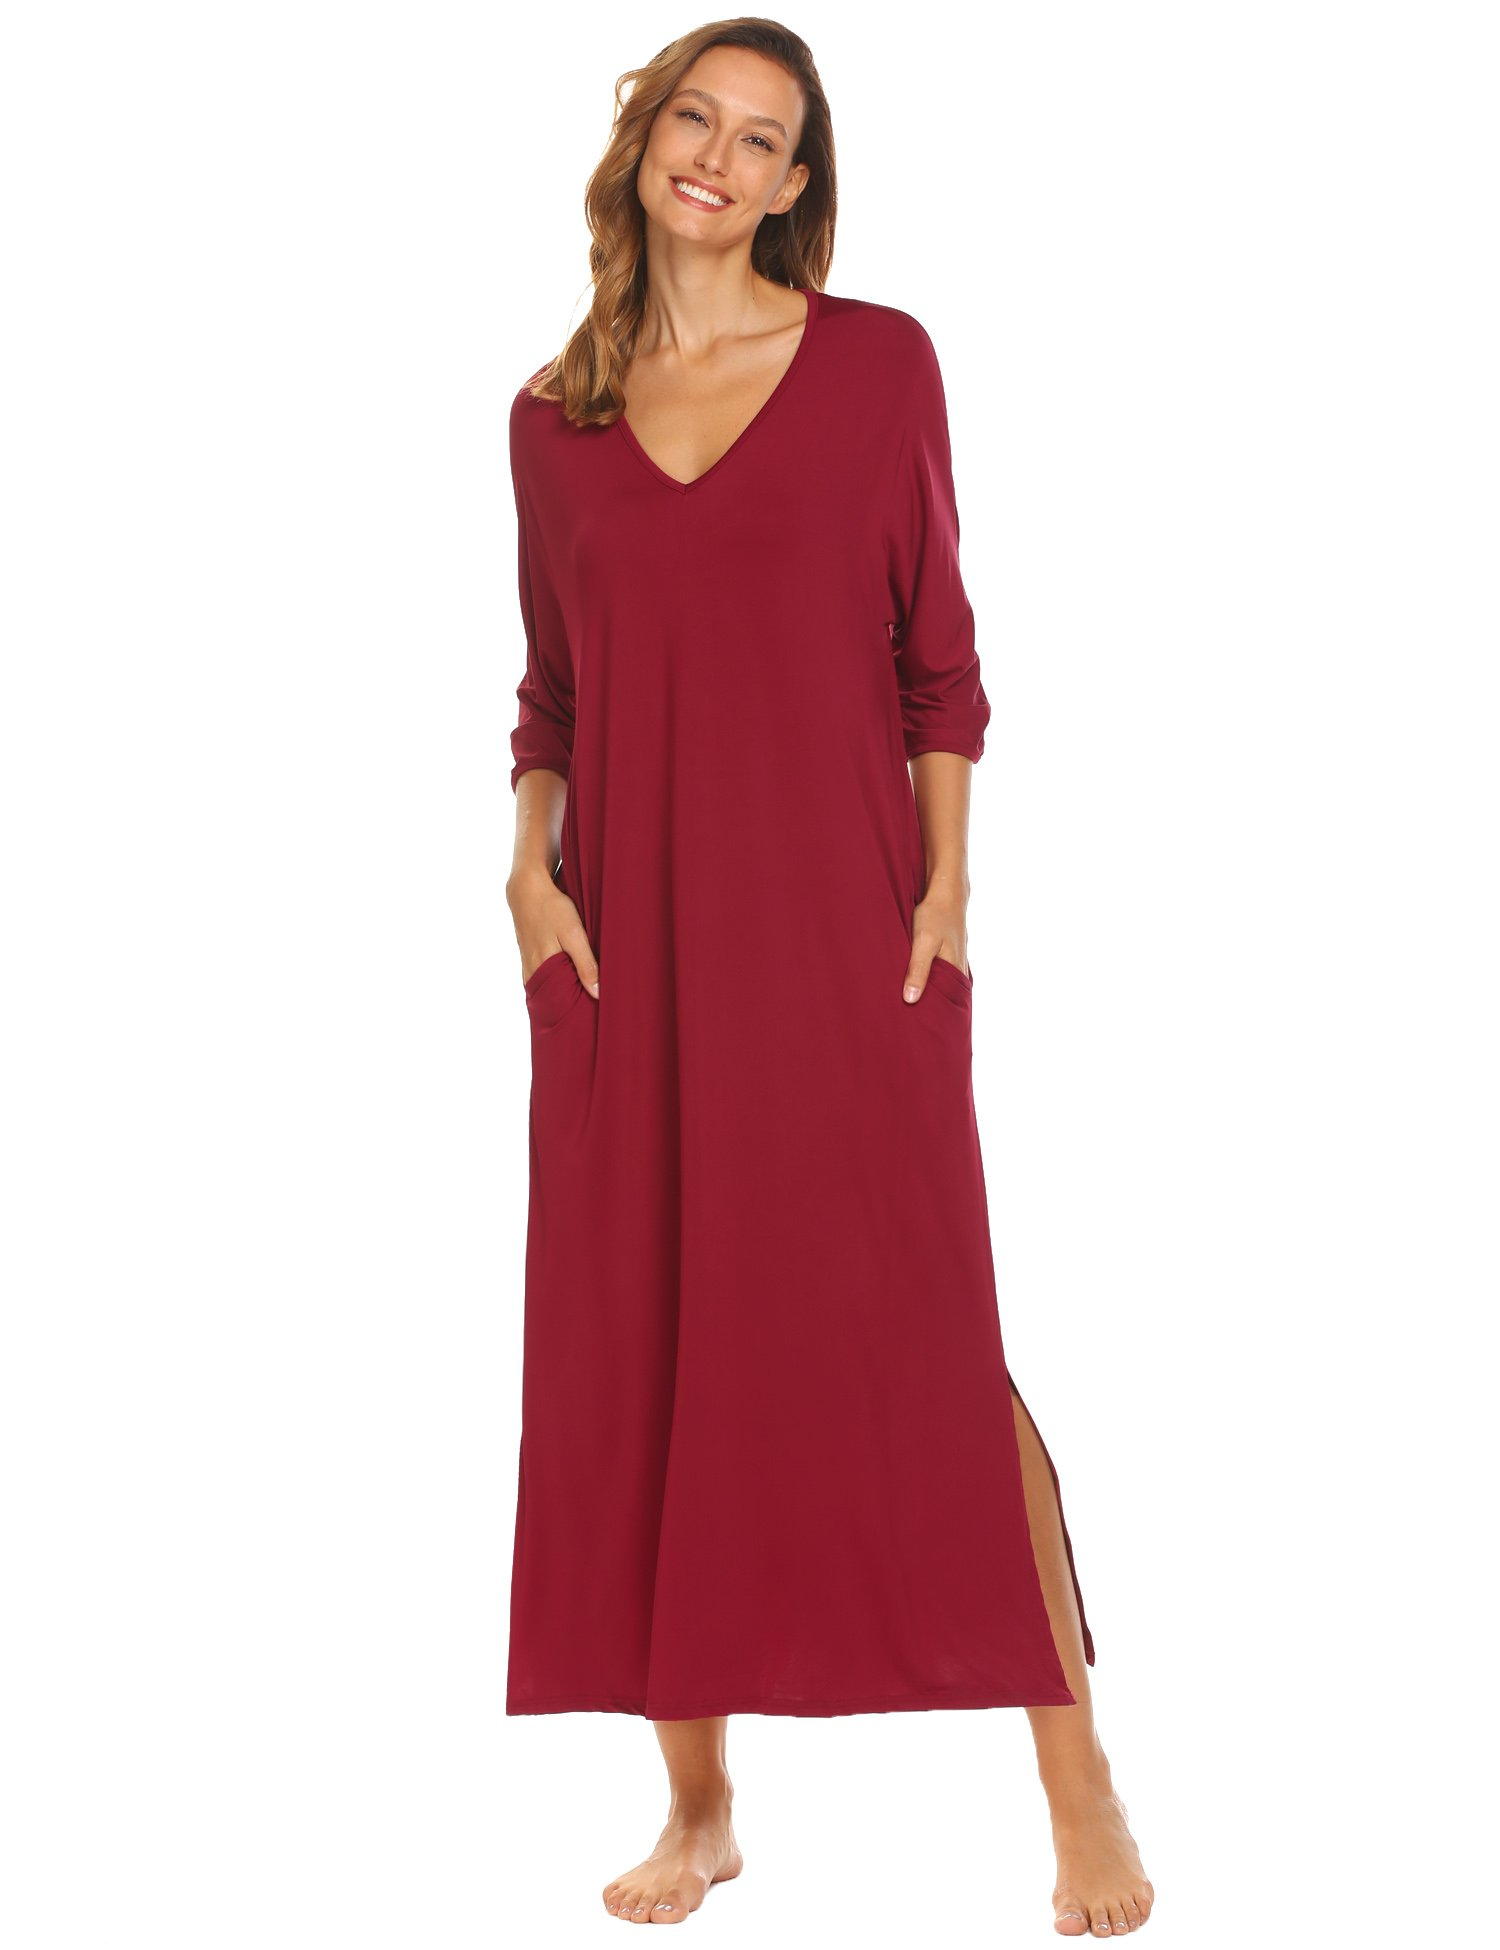 Ekouaer Ladies Nightgowns Long Length, V-Neck 3/4 Sleeve Nightgown with Pocket